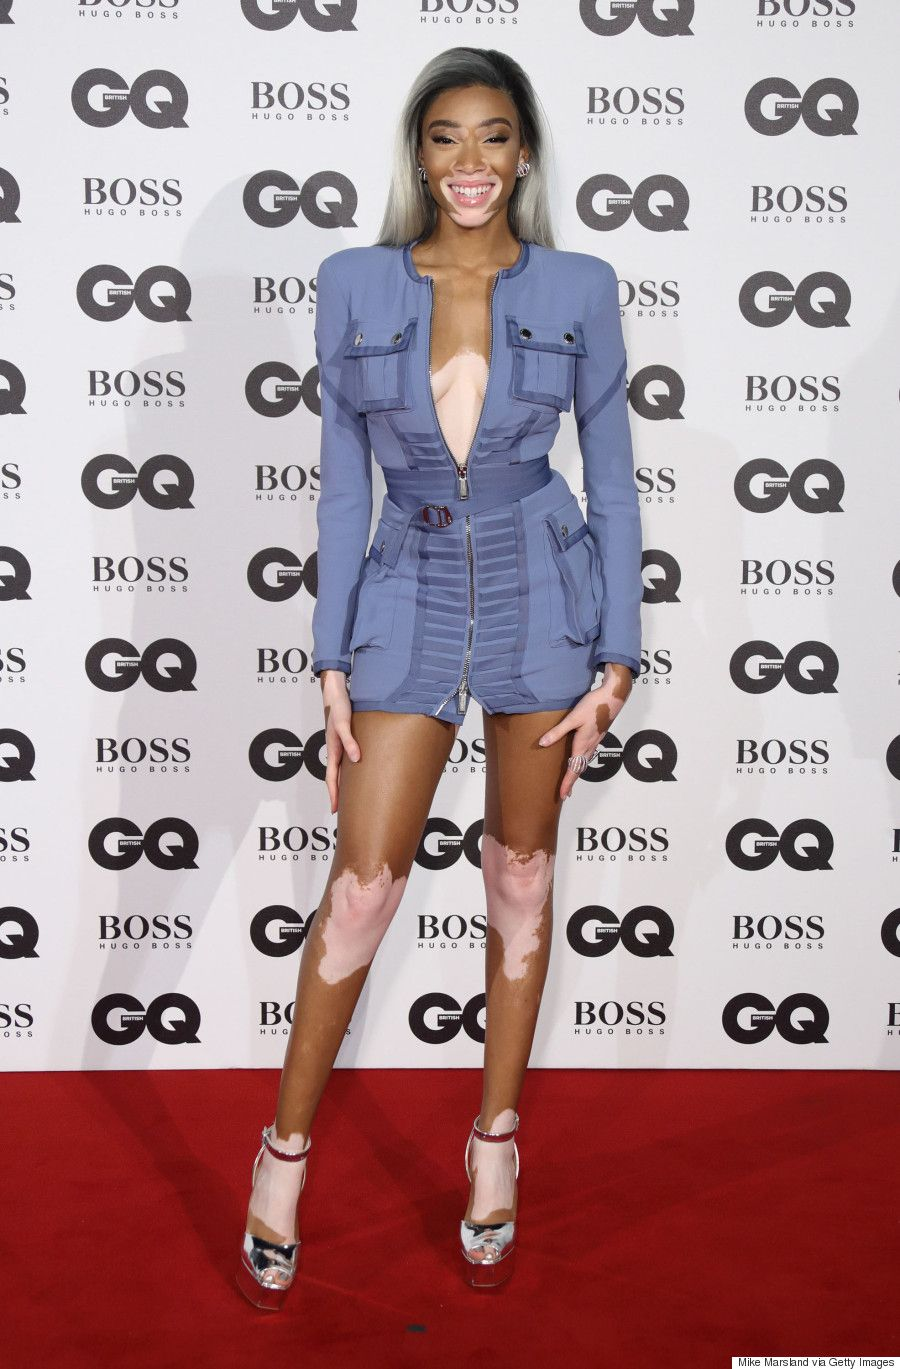 309aaa2b2cb winnie harlow - Vitiligo (vit-ih-LIE-go) is a disease that causes the loss  of skin color in blotches. The extent and rate of color loss from vitiligo  is ...